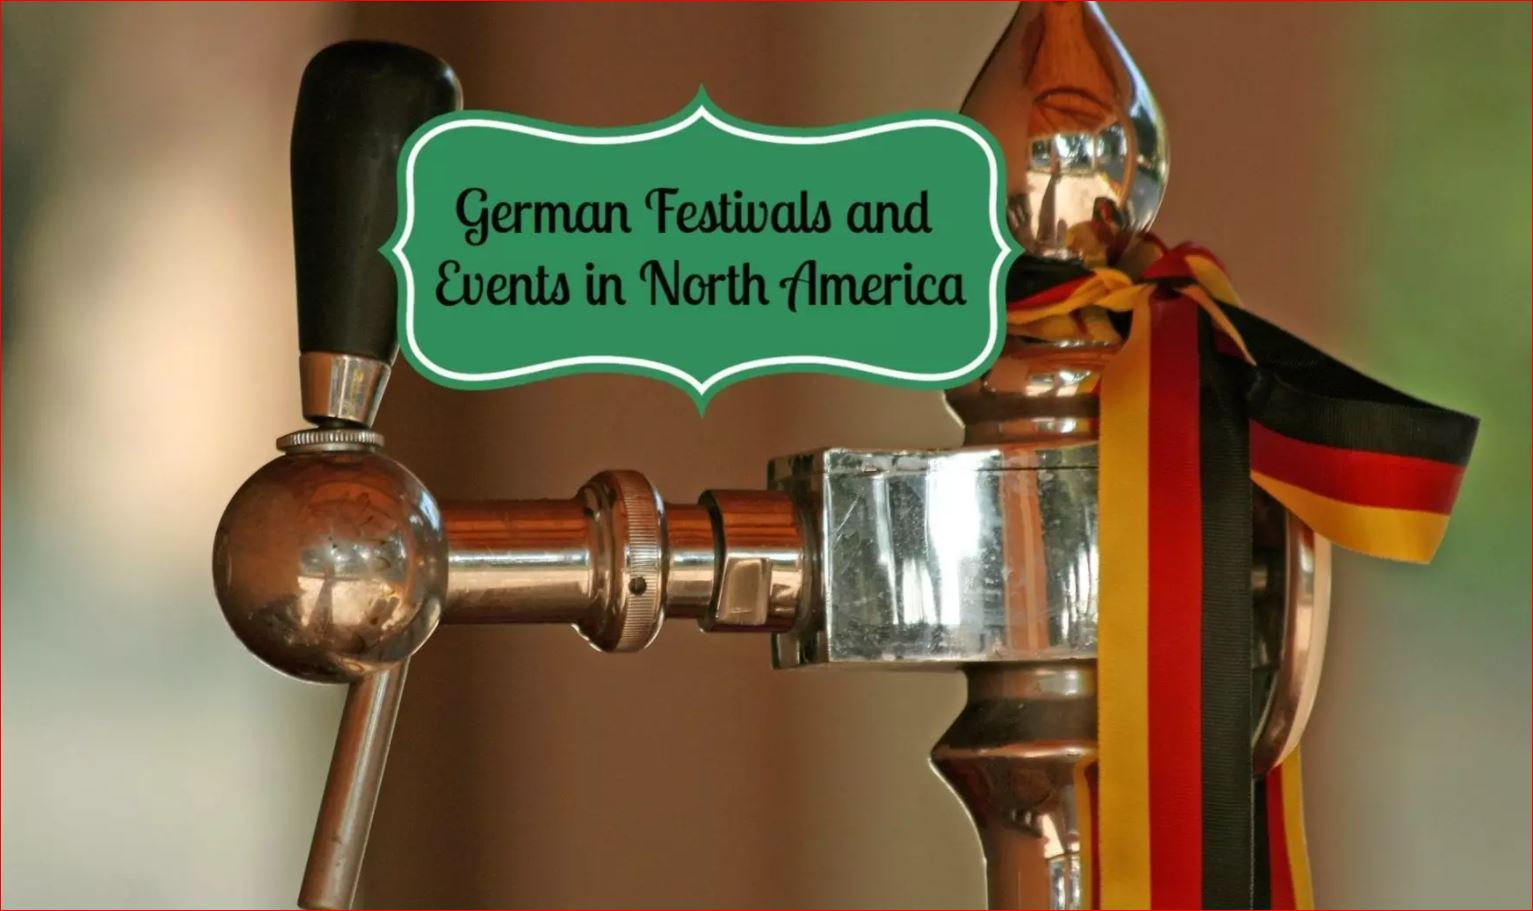 German Festivals in America, Events and Celebrations